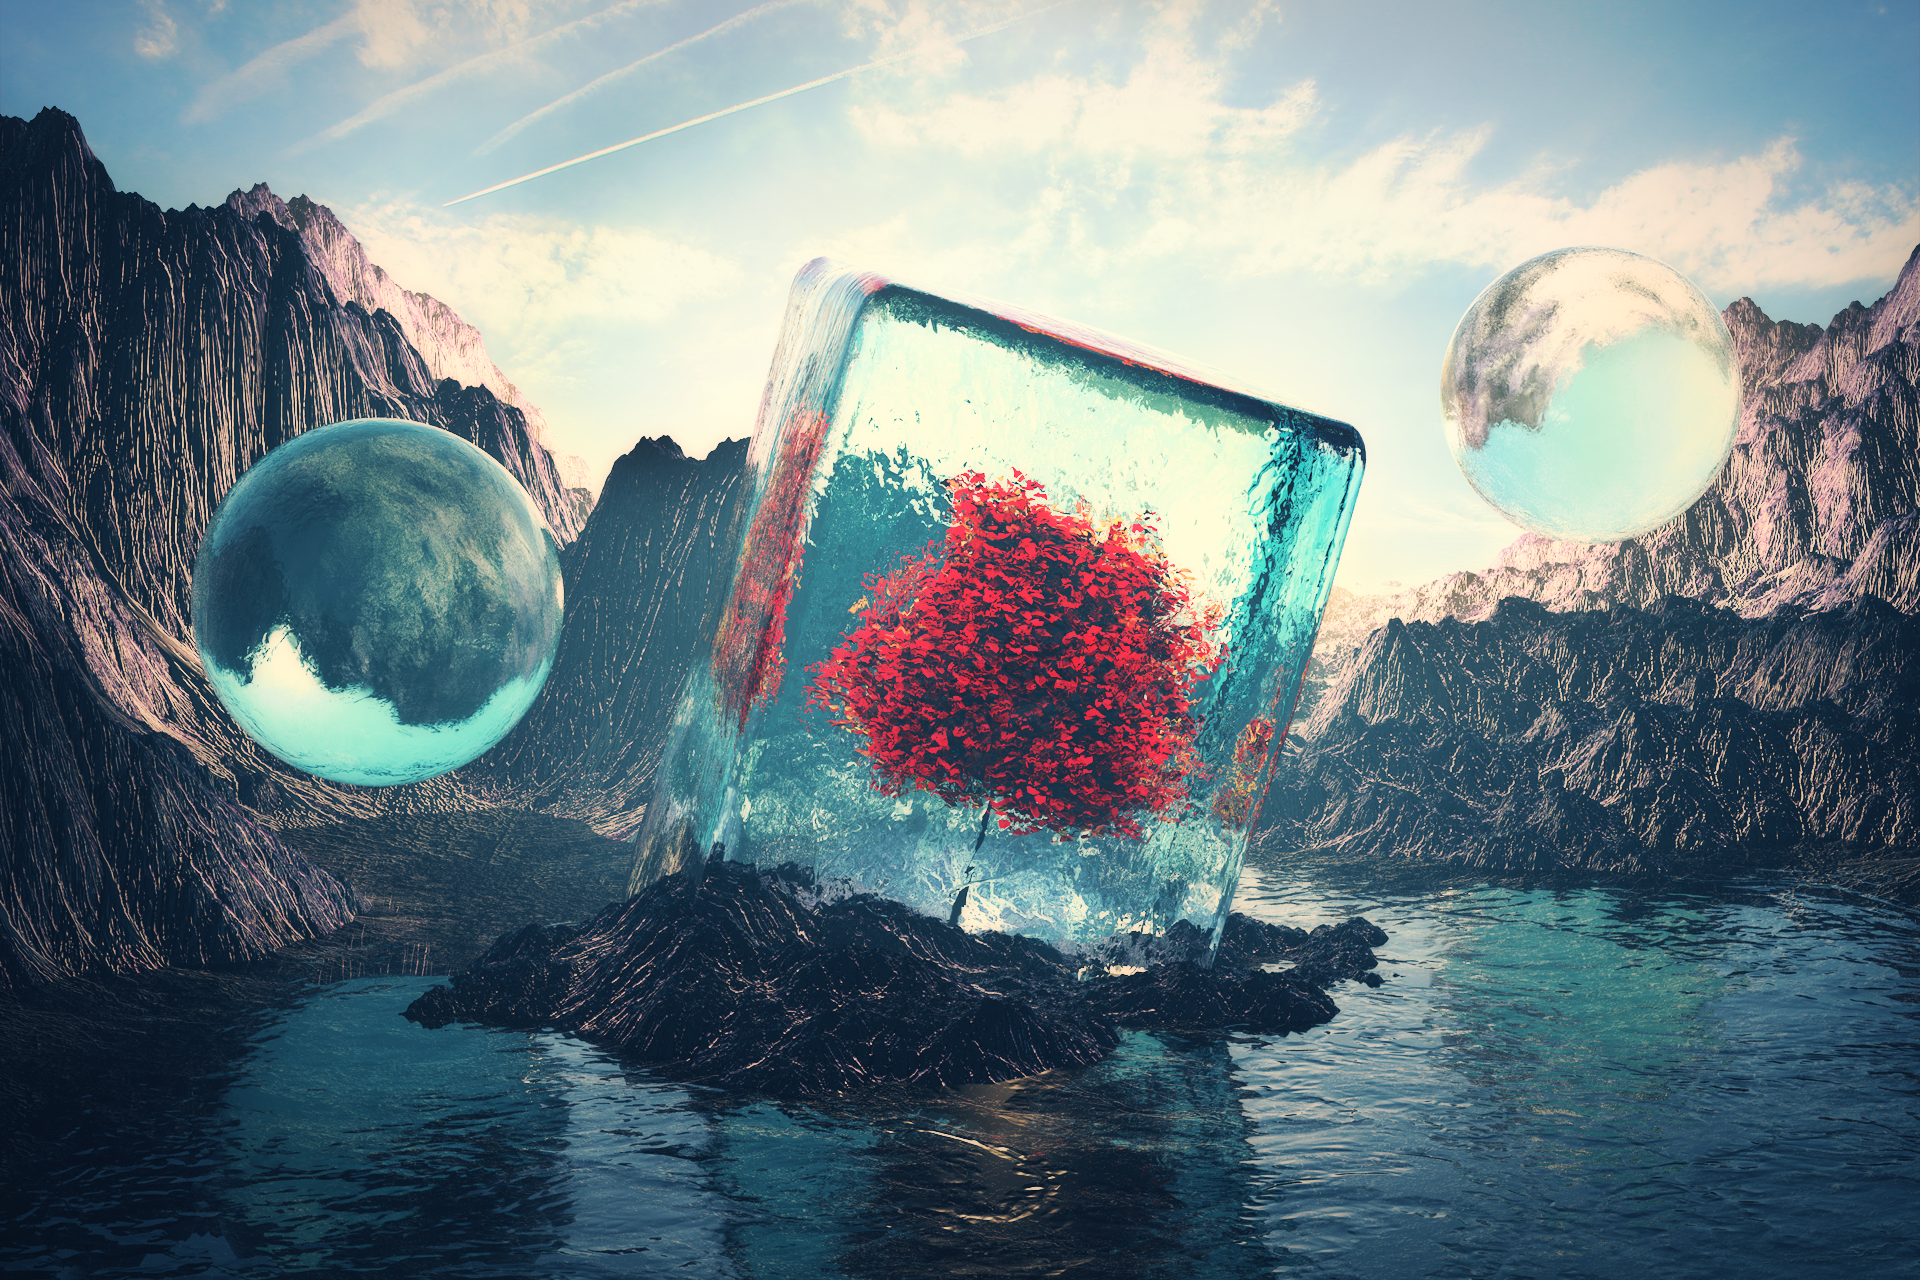 General 1920x1280 Cinema4D  landscape nature abstract digital art 3D Abstract surreal